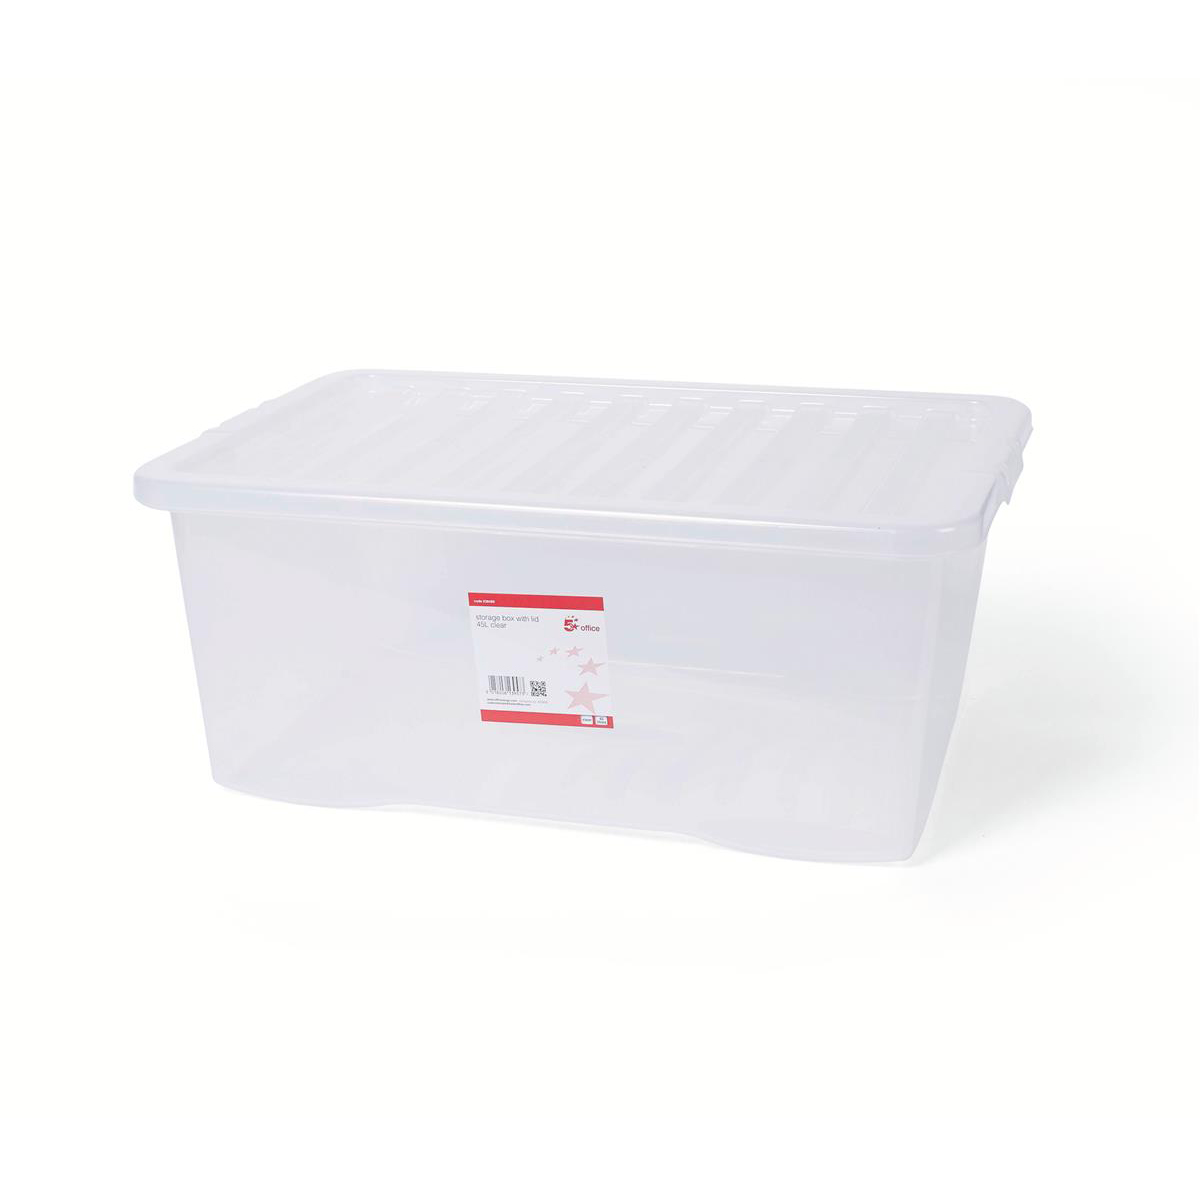 Image for 5 Star Office Storage Box Plastic with Lid Stackable 45 Litre Clear